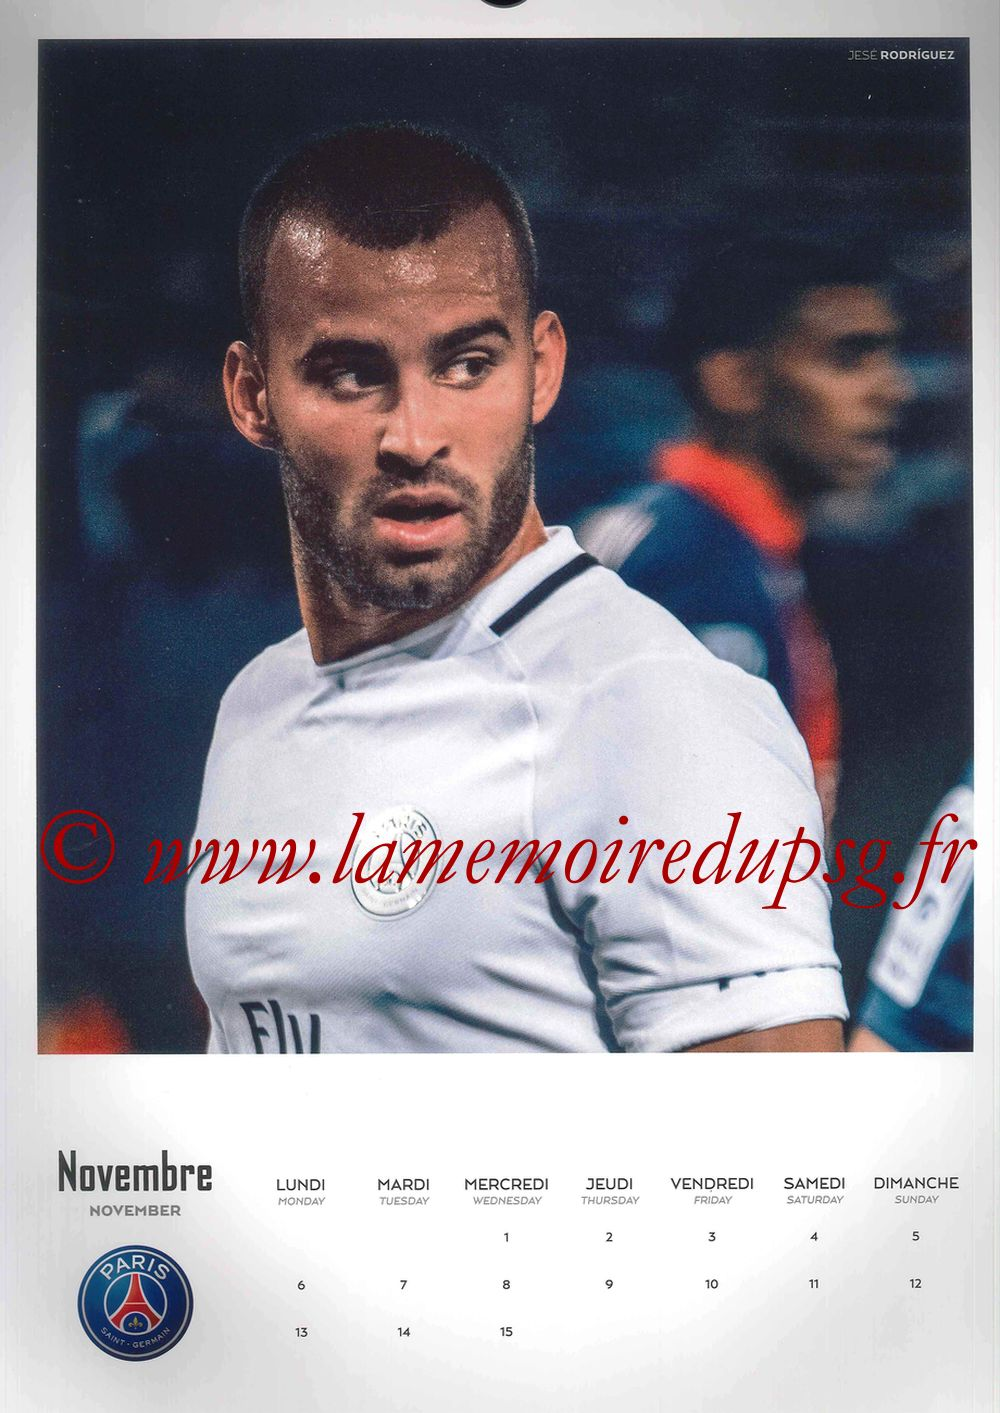 Calendrier PSG 2017 - Page 21 - JESE Rodriguez